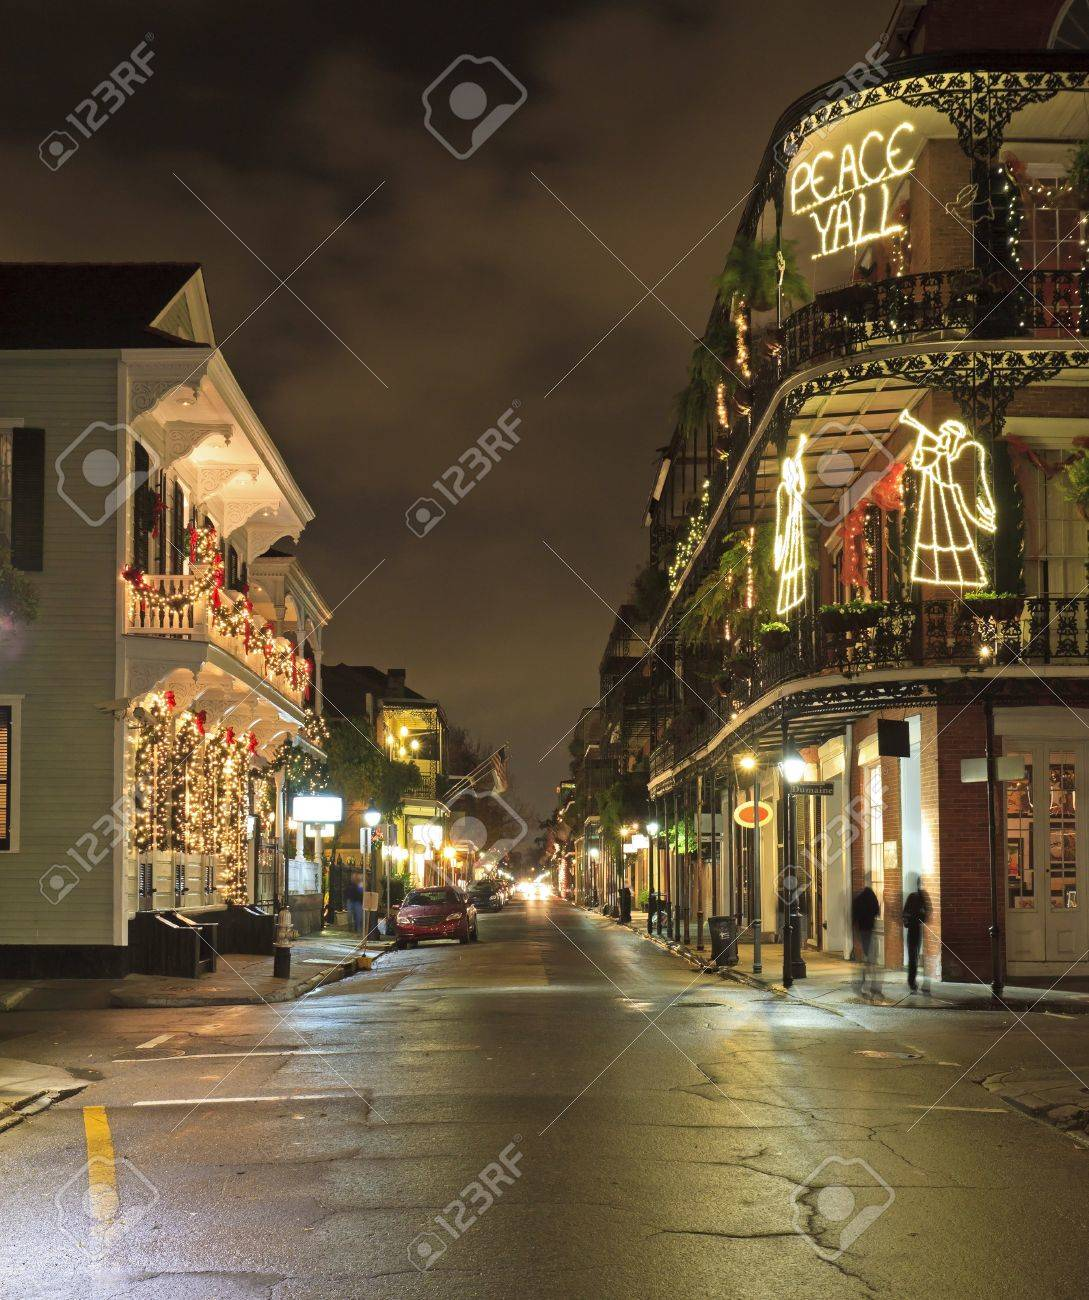 Christmas Lights on the corner of Royal and Dumaine Strrets in the French Quarter of New Orleans - 14815845